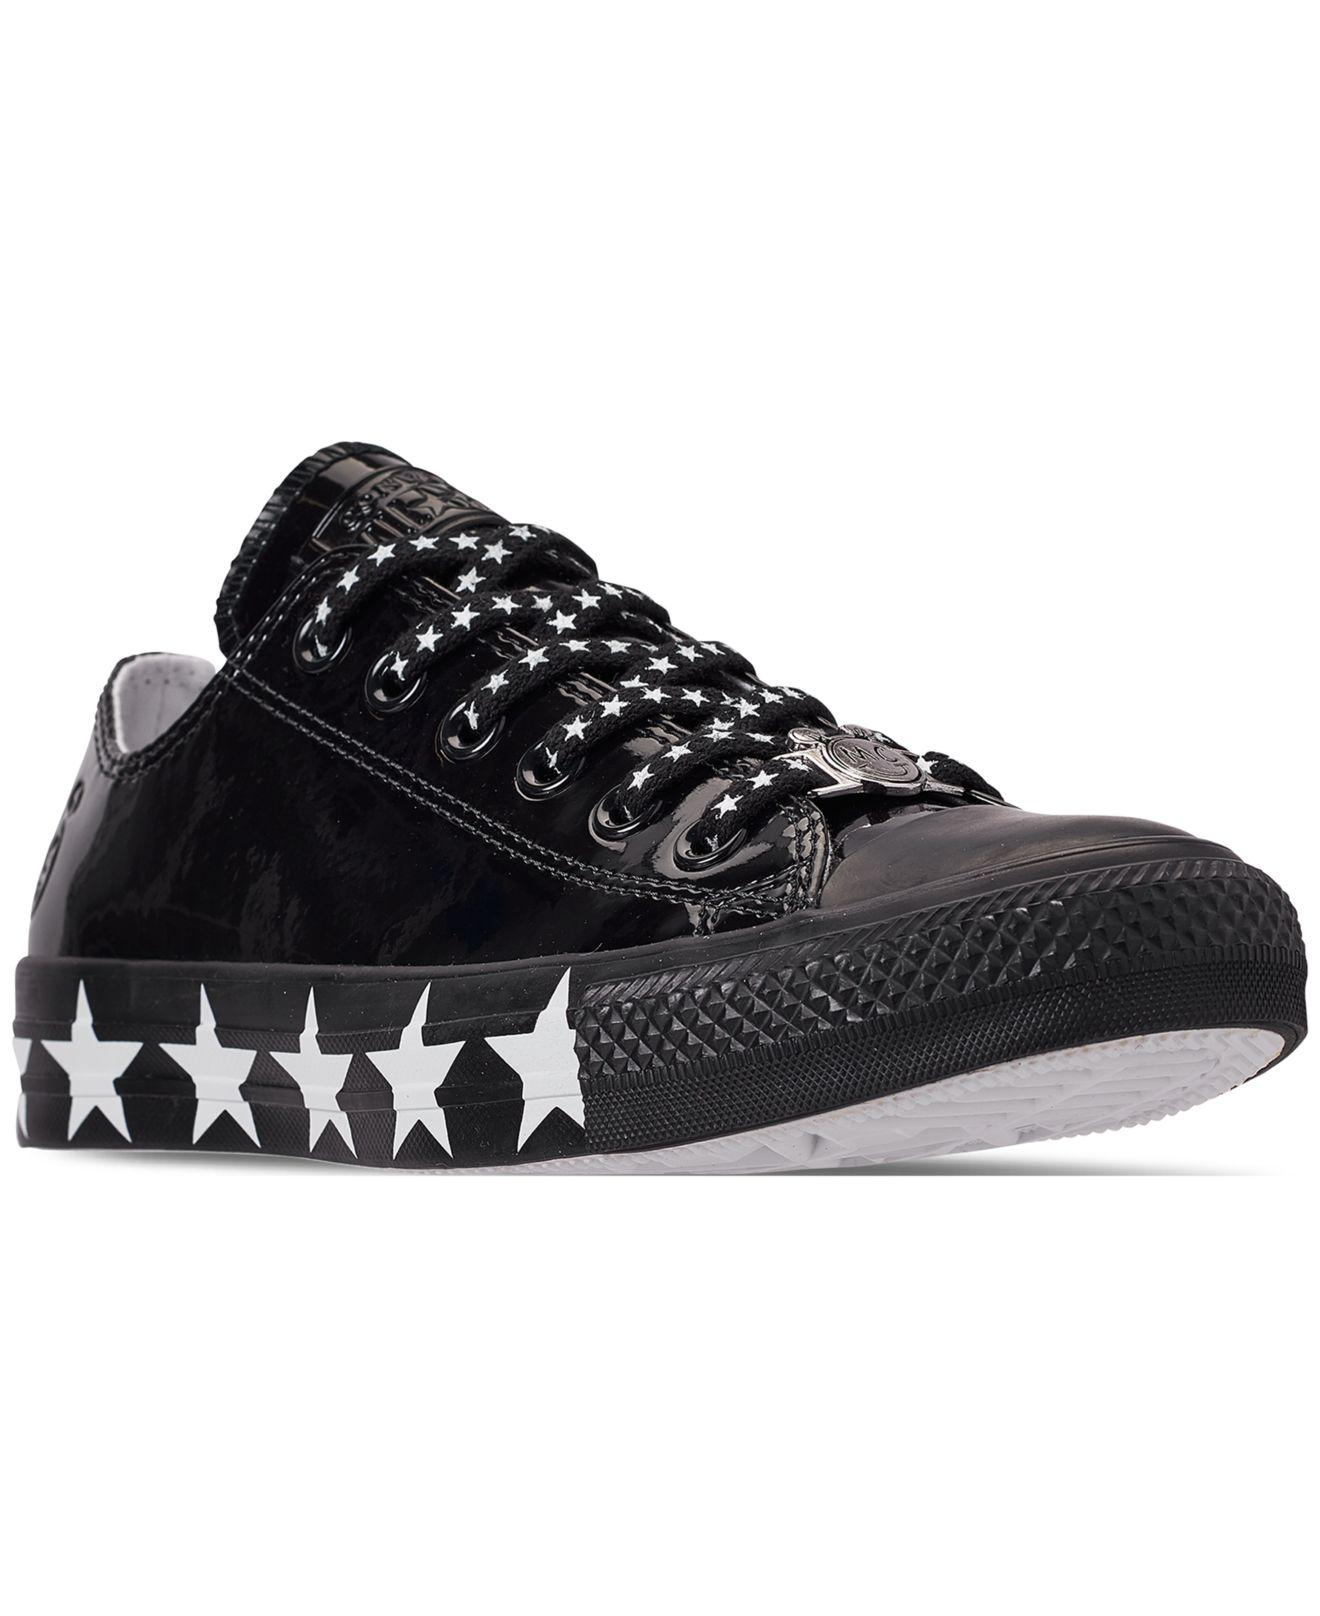 25c9bebd944b2e Converse. Women s Black Chuck Taylor All Star X Miley Cyrus Ox Casual  Sneakers From Finish Line